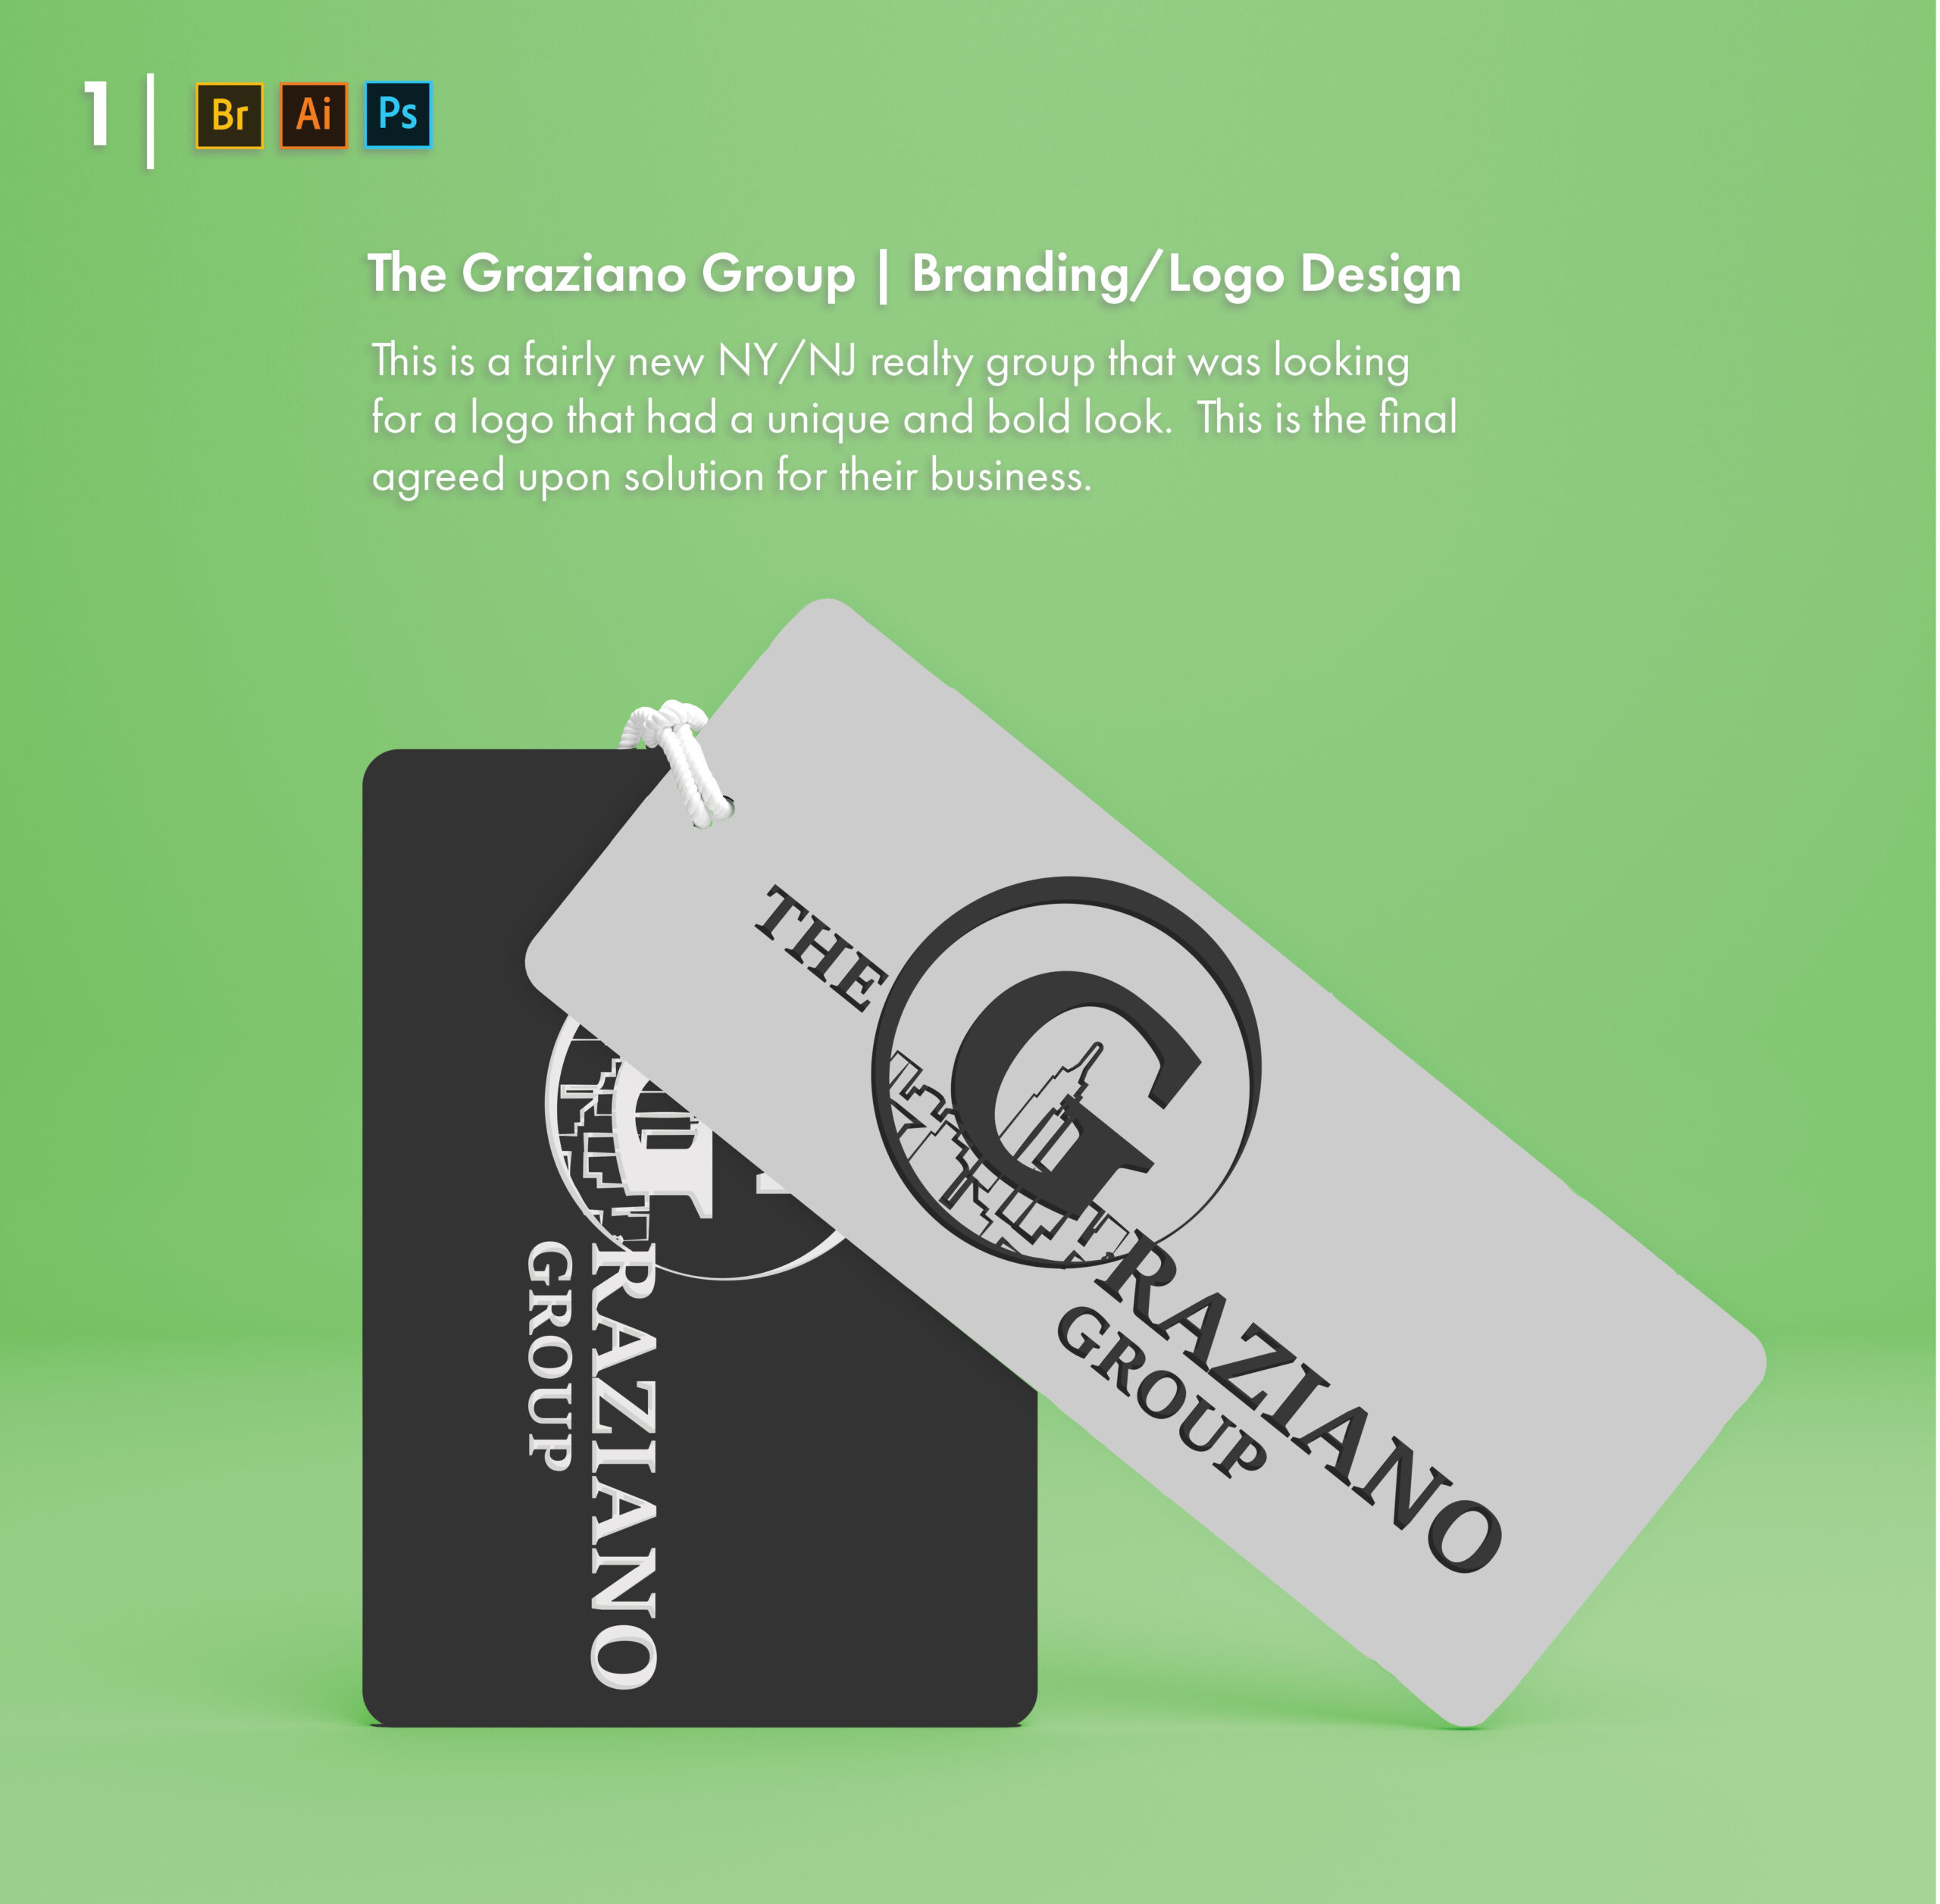 1 - The Graziano Group Branding